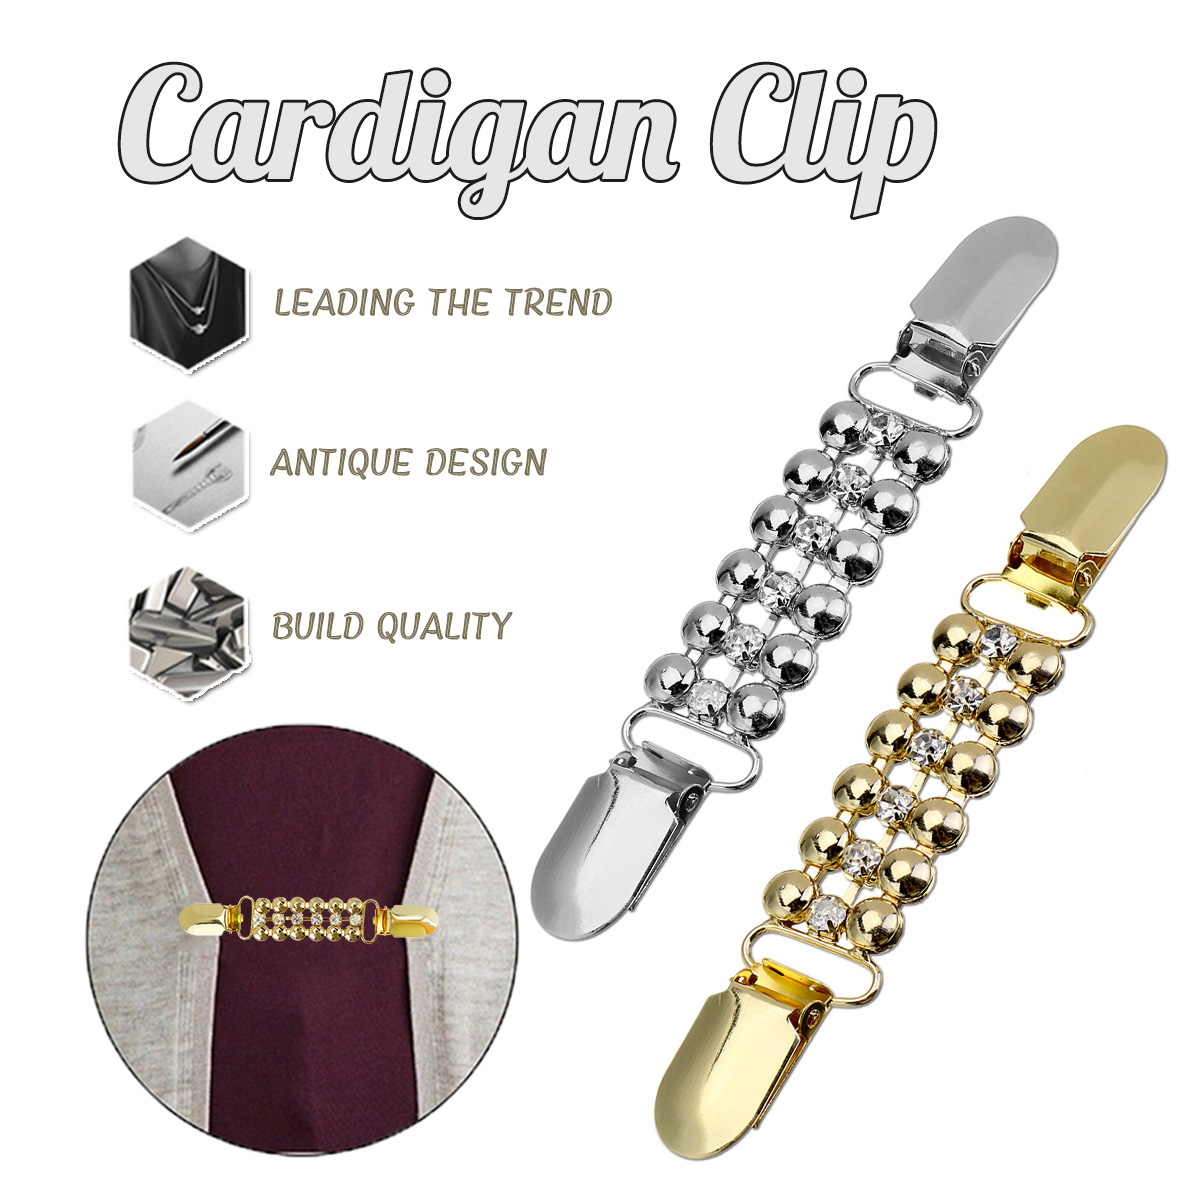 Conscientious Kiwarm Retro Sweater Cardigan Clip Buckles Shawl Blouse Dress Collar Pin Brooch Duck-mouth Metal Clips Silver Gold Alloy Attractive And Durable Arts,crafts & Sewing